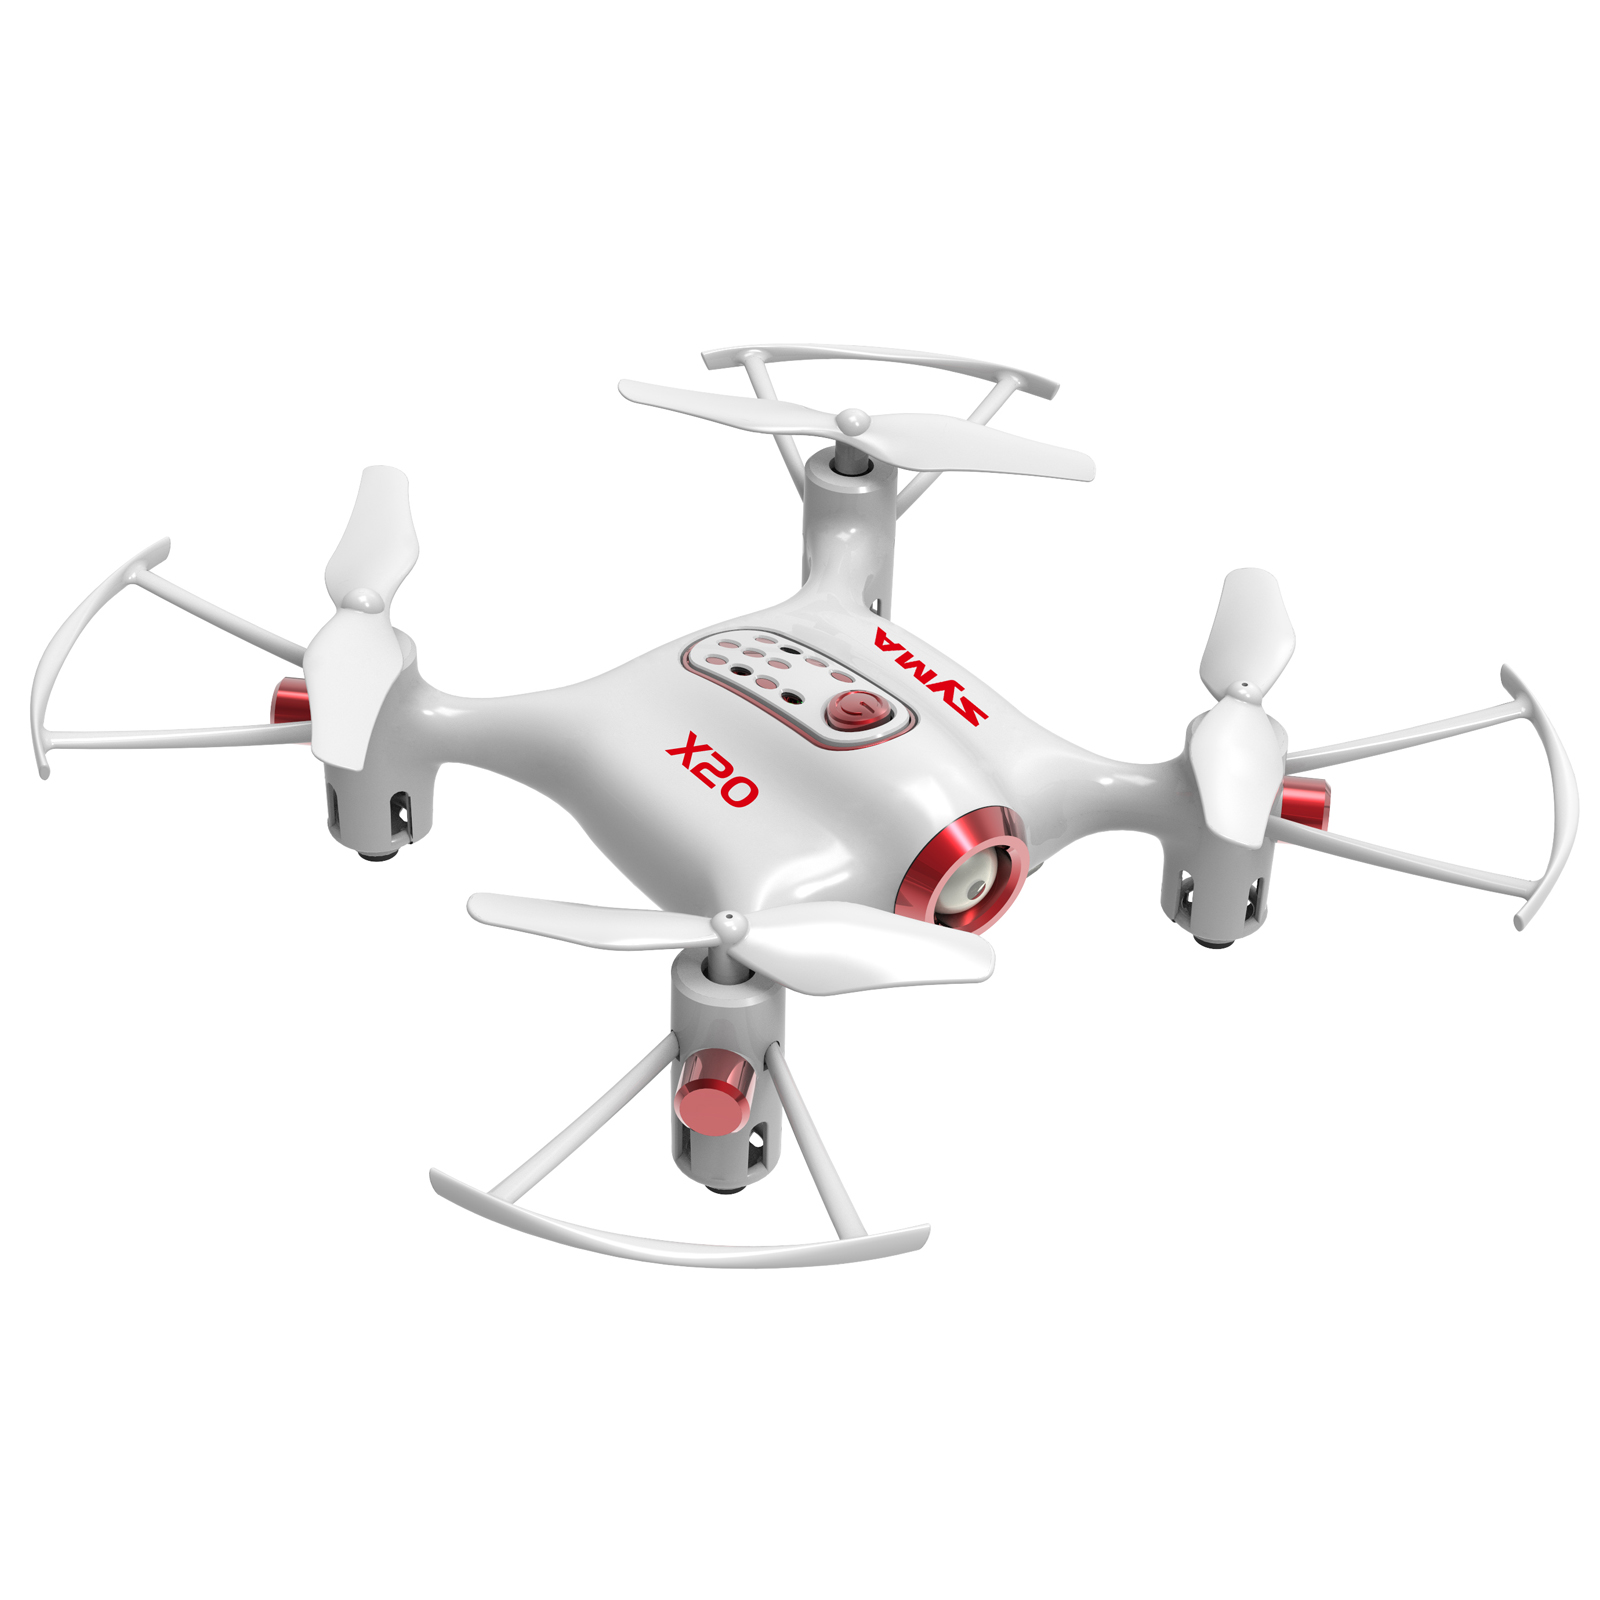 Cheerwing Syma X20 2.4Ghz Mini RC Quadcopter Headless Mode Pocket Drone Altitude Hold by Syma